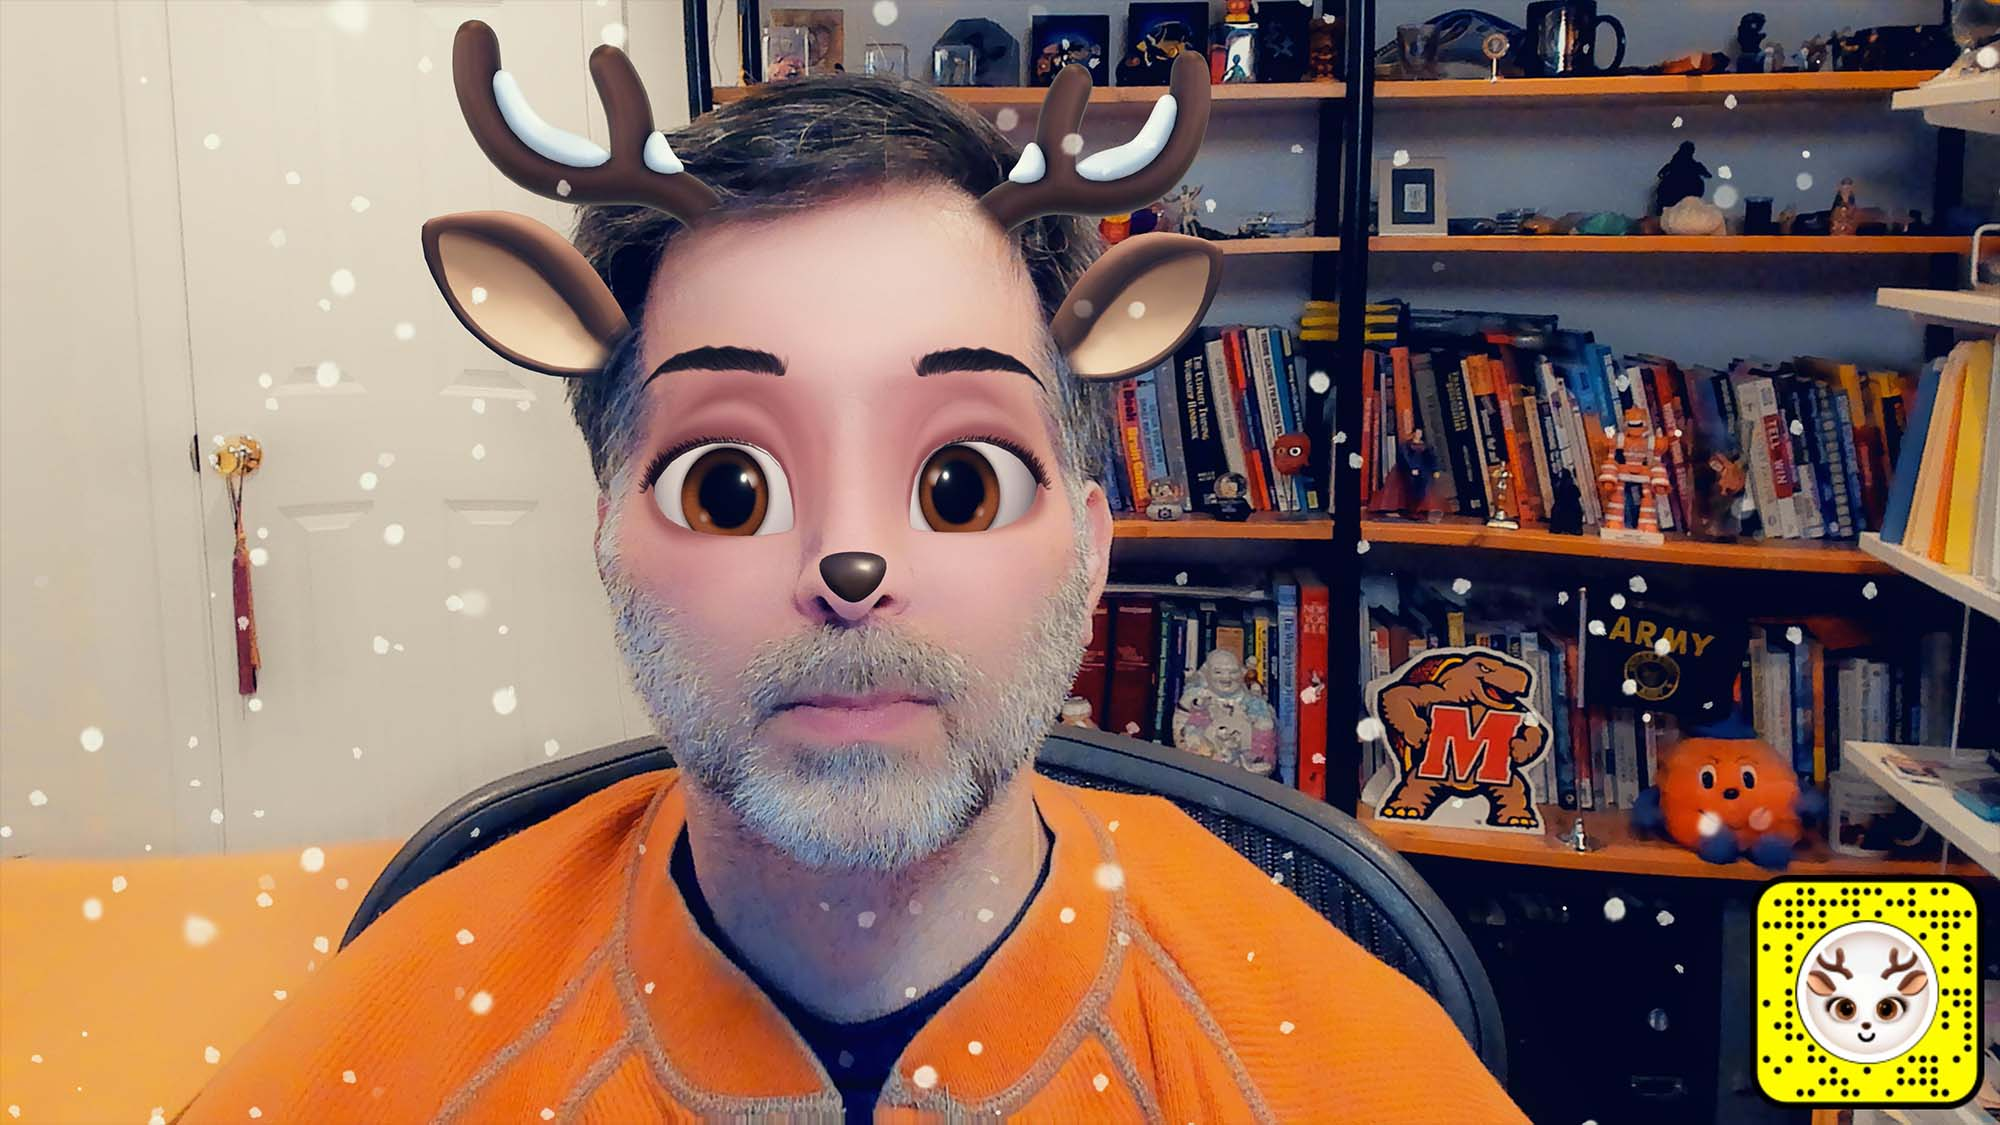 Snap Camera filter lens for a deer face with antlers